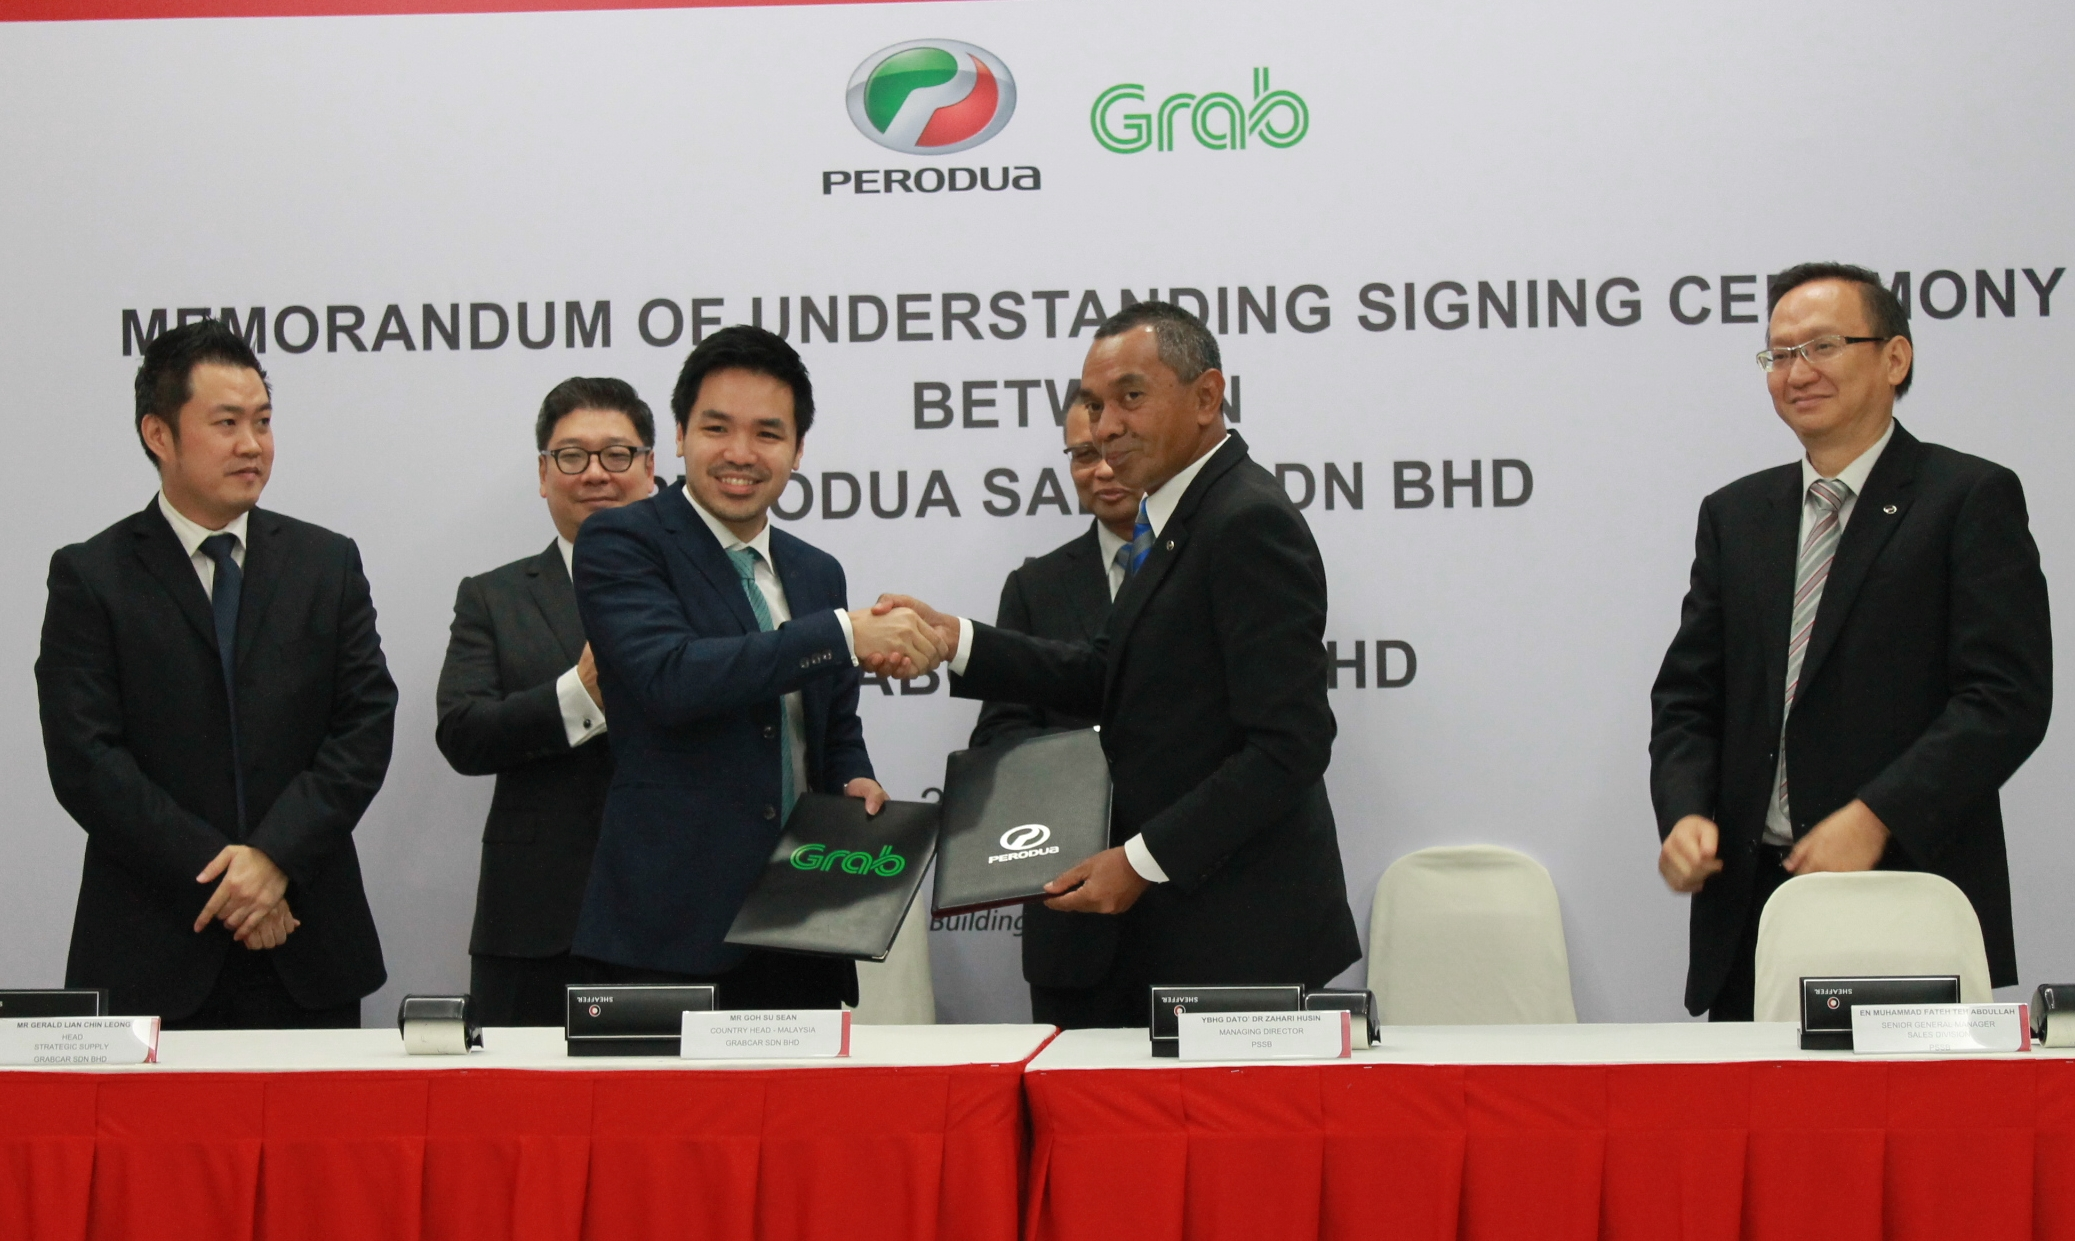 Perodua and Grab partner to offer Bezza, Myvi and Alza at